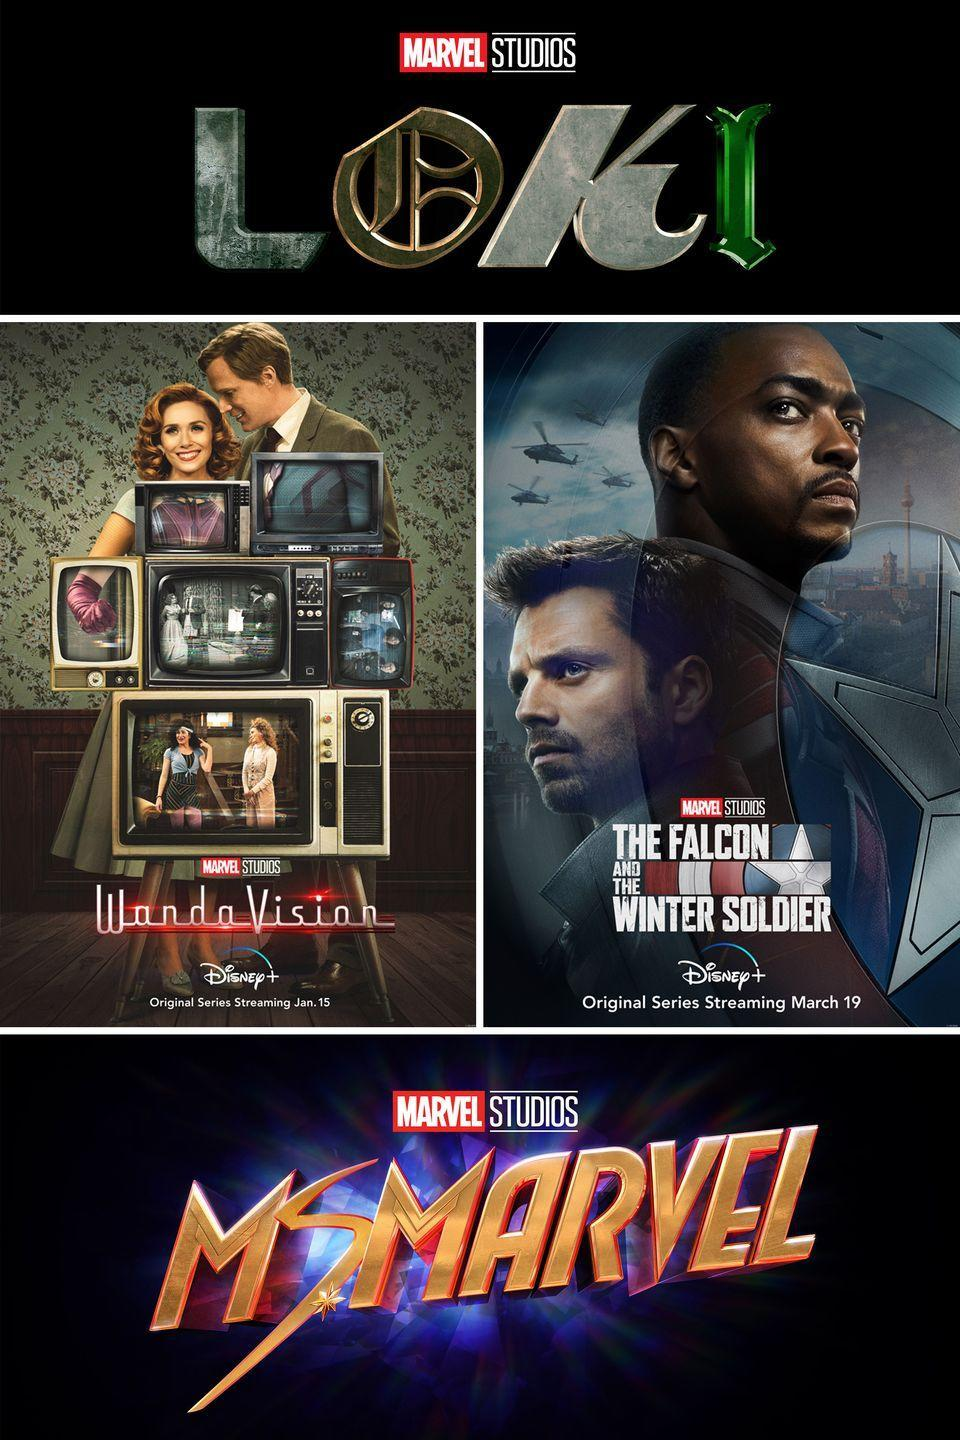 """<p>After so many years of relentless Marvel Cinematic Universe releases, the last eighteen months has brought a real MCU drought—the last movie released in theaters was <em><a href=""""https://www.amazon.com/Spider-Man-Far-Home-Tom-Holland/dp/B07TKZQFJC/?tag=syn-yahoo-20&ascsubtag=%5Bartid%7C10051.g.35058474%5Bsrc%7Cyahoo-us"""" rel=""""nofollow noopener"""" target=""""_blank"""" data-ylk=""""slk:Spider-Man: Far From Home"""" class=""""link rapid-noclick-resp"""">Spider-Man: Far From Home</a></em> in the summer of 2019, with COVID-19 delaying the planned 2020 release of both <em><a href=""""https://www.elle.com/culture/movies-tv/a29534344/black-widow-movie-spoilers-rumors-news-date-cast/"""" rel=""""nofollow noopener"""" target=""""_blank"""" data-ylk=""""slk:Black Widow"""" class=""""link rapid-noclick-resp"""">Black Widow</a></em> and <em>Eternals</em>. And though it may still be a while before you see your MCU faves on the big screen again, Disney+ is about to revive many of them in the comfort of your own home.</p><p>The first series headed to Disney+ is <em><a href=""""https://www.elle.com/culture/movies-tv/a34100532/wandavision-disney-plus-news-release-date-cast-spoilers-trailer/"""" rel=""""nofollow noopener"""" target=""""_blank"""" data-ylk=""""slk:WandaVision"""" class=""""link rapid-noclick-resp"""">WandaVision</a></em>, a time-travellng romantic comedy centered on Elizabeth Olsen's Scarlet Witch. March will see the arrival of highly anticipated Captain America spinoff series, <em>The Falcon and the Winter Soldier</em>, which brings together Anthony Mackie's Sam Wilson and Sebastian Stan's Bucky Barnes in what's sure to be a homoerotic superhero team-up for the ages. Later in spring, Tom Hiddleston's mischievous Thor villain Loki will premiere in his own series, a crime caper which picks up shortly after the events of <em><a href=""""https://www.amazon.com/Marvel-Studios-Avengers-Robert-Downey/dp/B07R21NC3J/?tag=syn-yahoo-20&ascsubtag=%5Bartid%7C10051.g.35058474%5Bsrc%7Cyahoo-us"""" rel=""""nofollow noopener"""" target=""""_blank"""" data-ylk=""""slk:Avengers: End"""